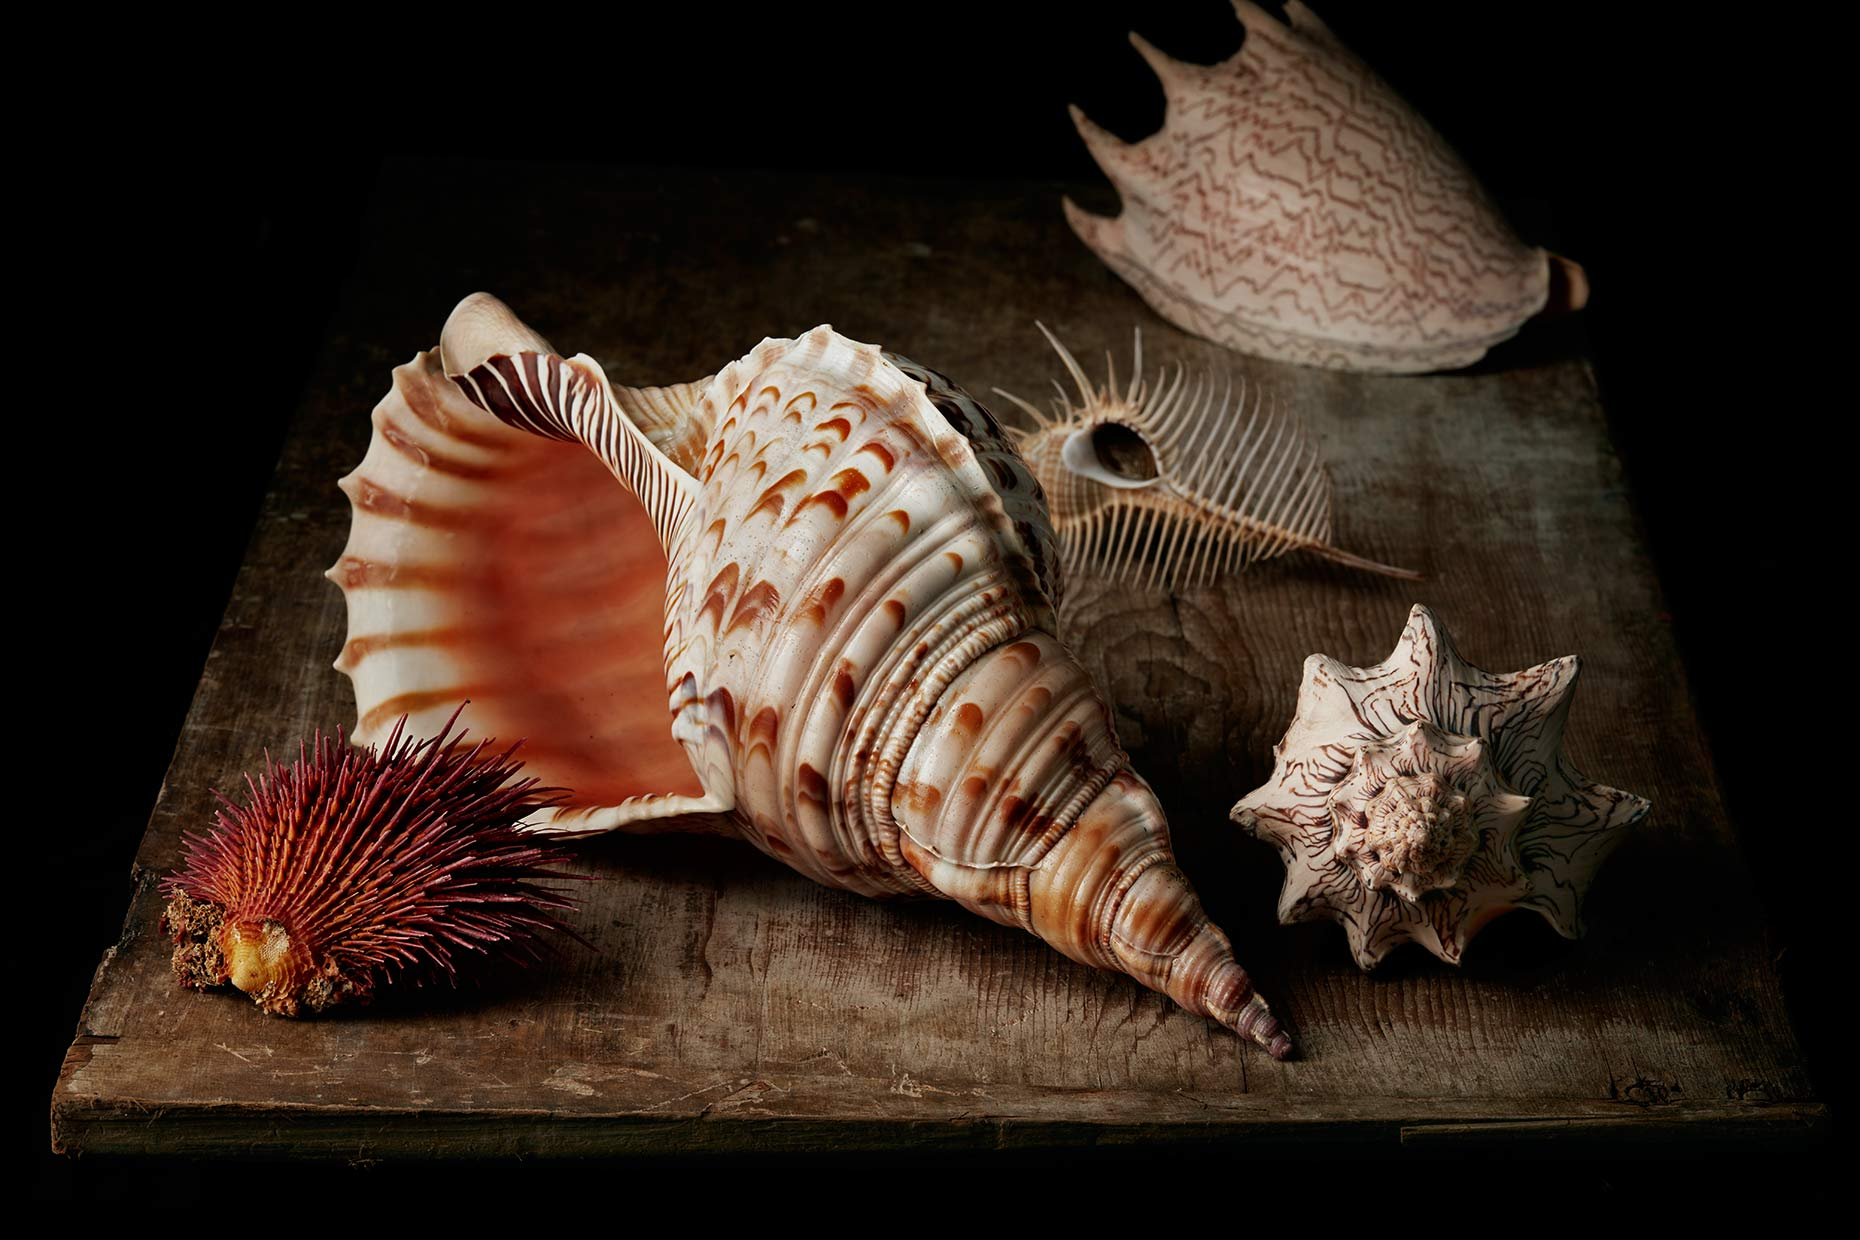 Still life photo of seashells on wooden board.